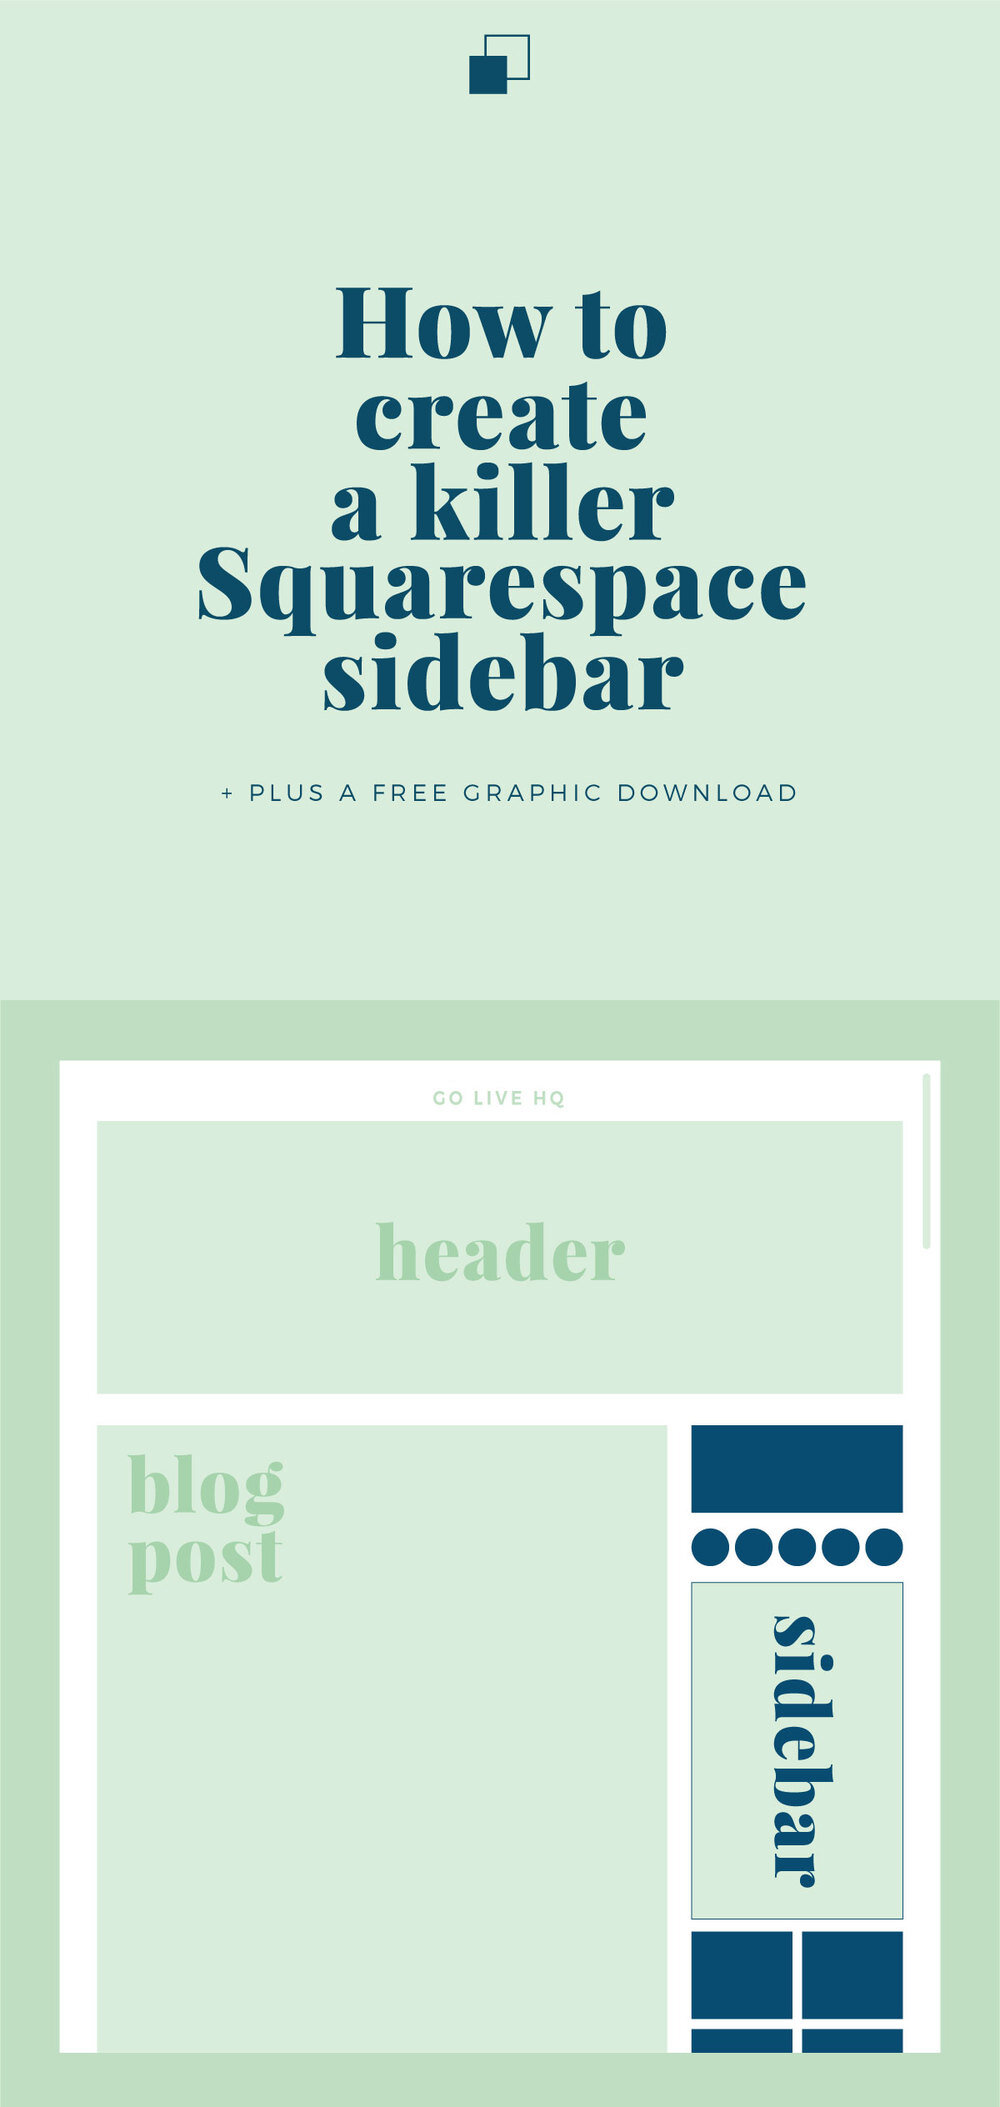 HOW+TO+CREATE+A+KILLER+SQUARESPACE+SIDE+BAR+++FREE+GRAPHIC+DOWNLOAD+_+golivehq.jpg